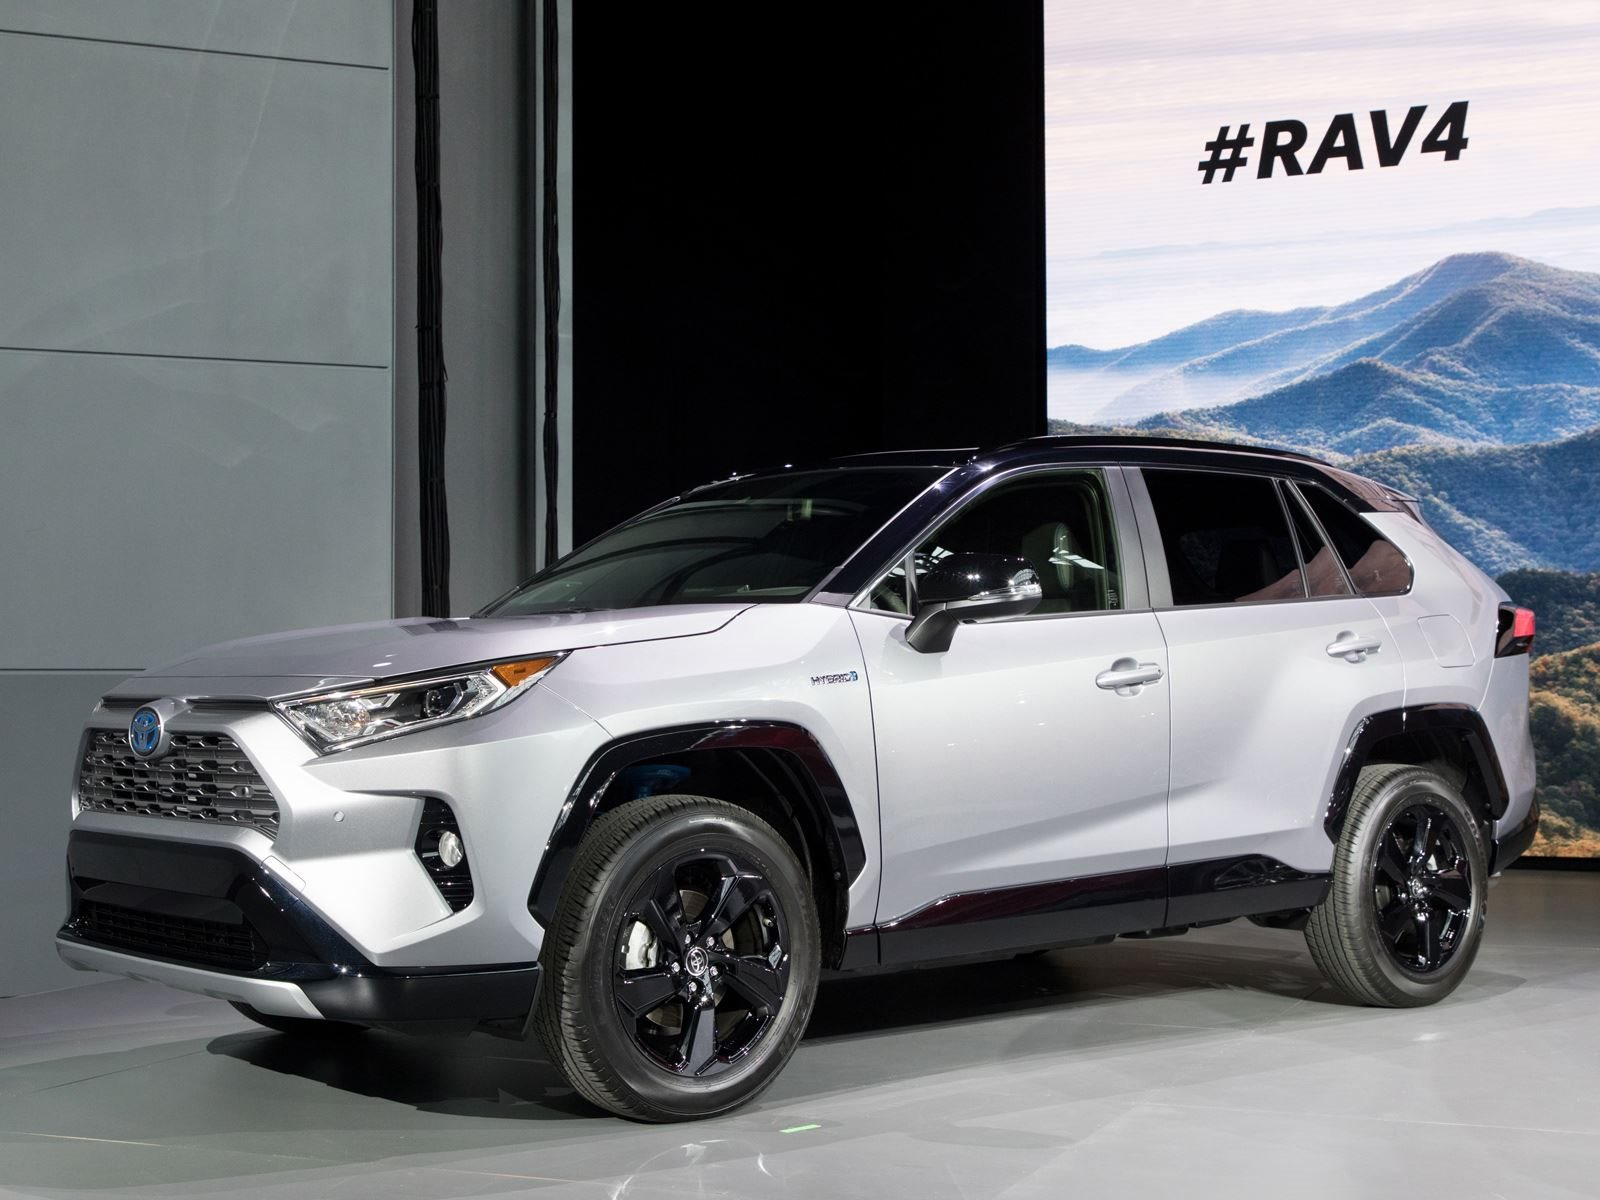 Toyota Rav4 Fuel Consumption The 2019 Toyota Rav4 Hybrid Will Have A 600 Mile Range